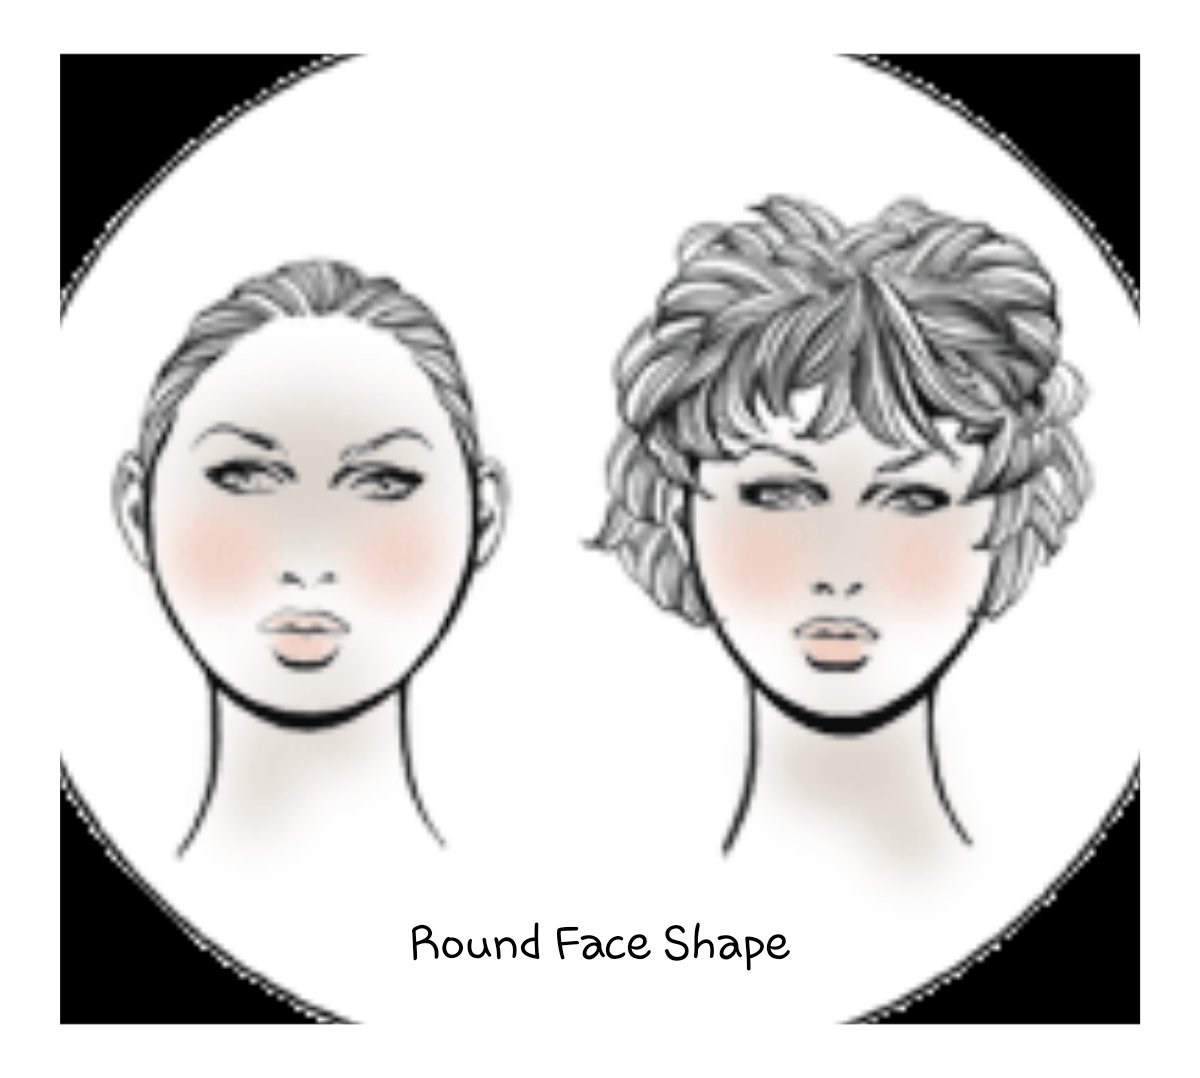 Round Face shape for hair extensions